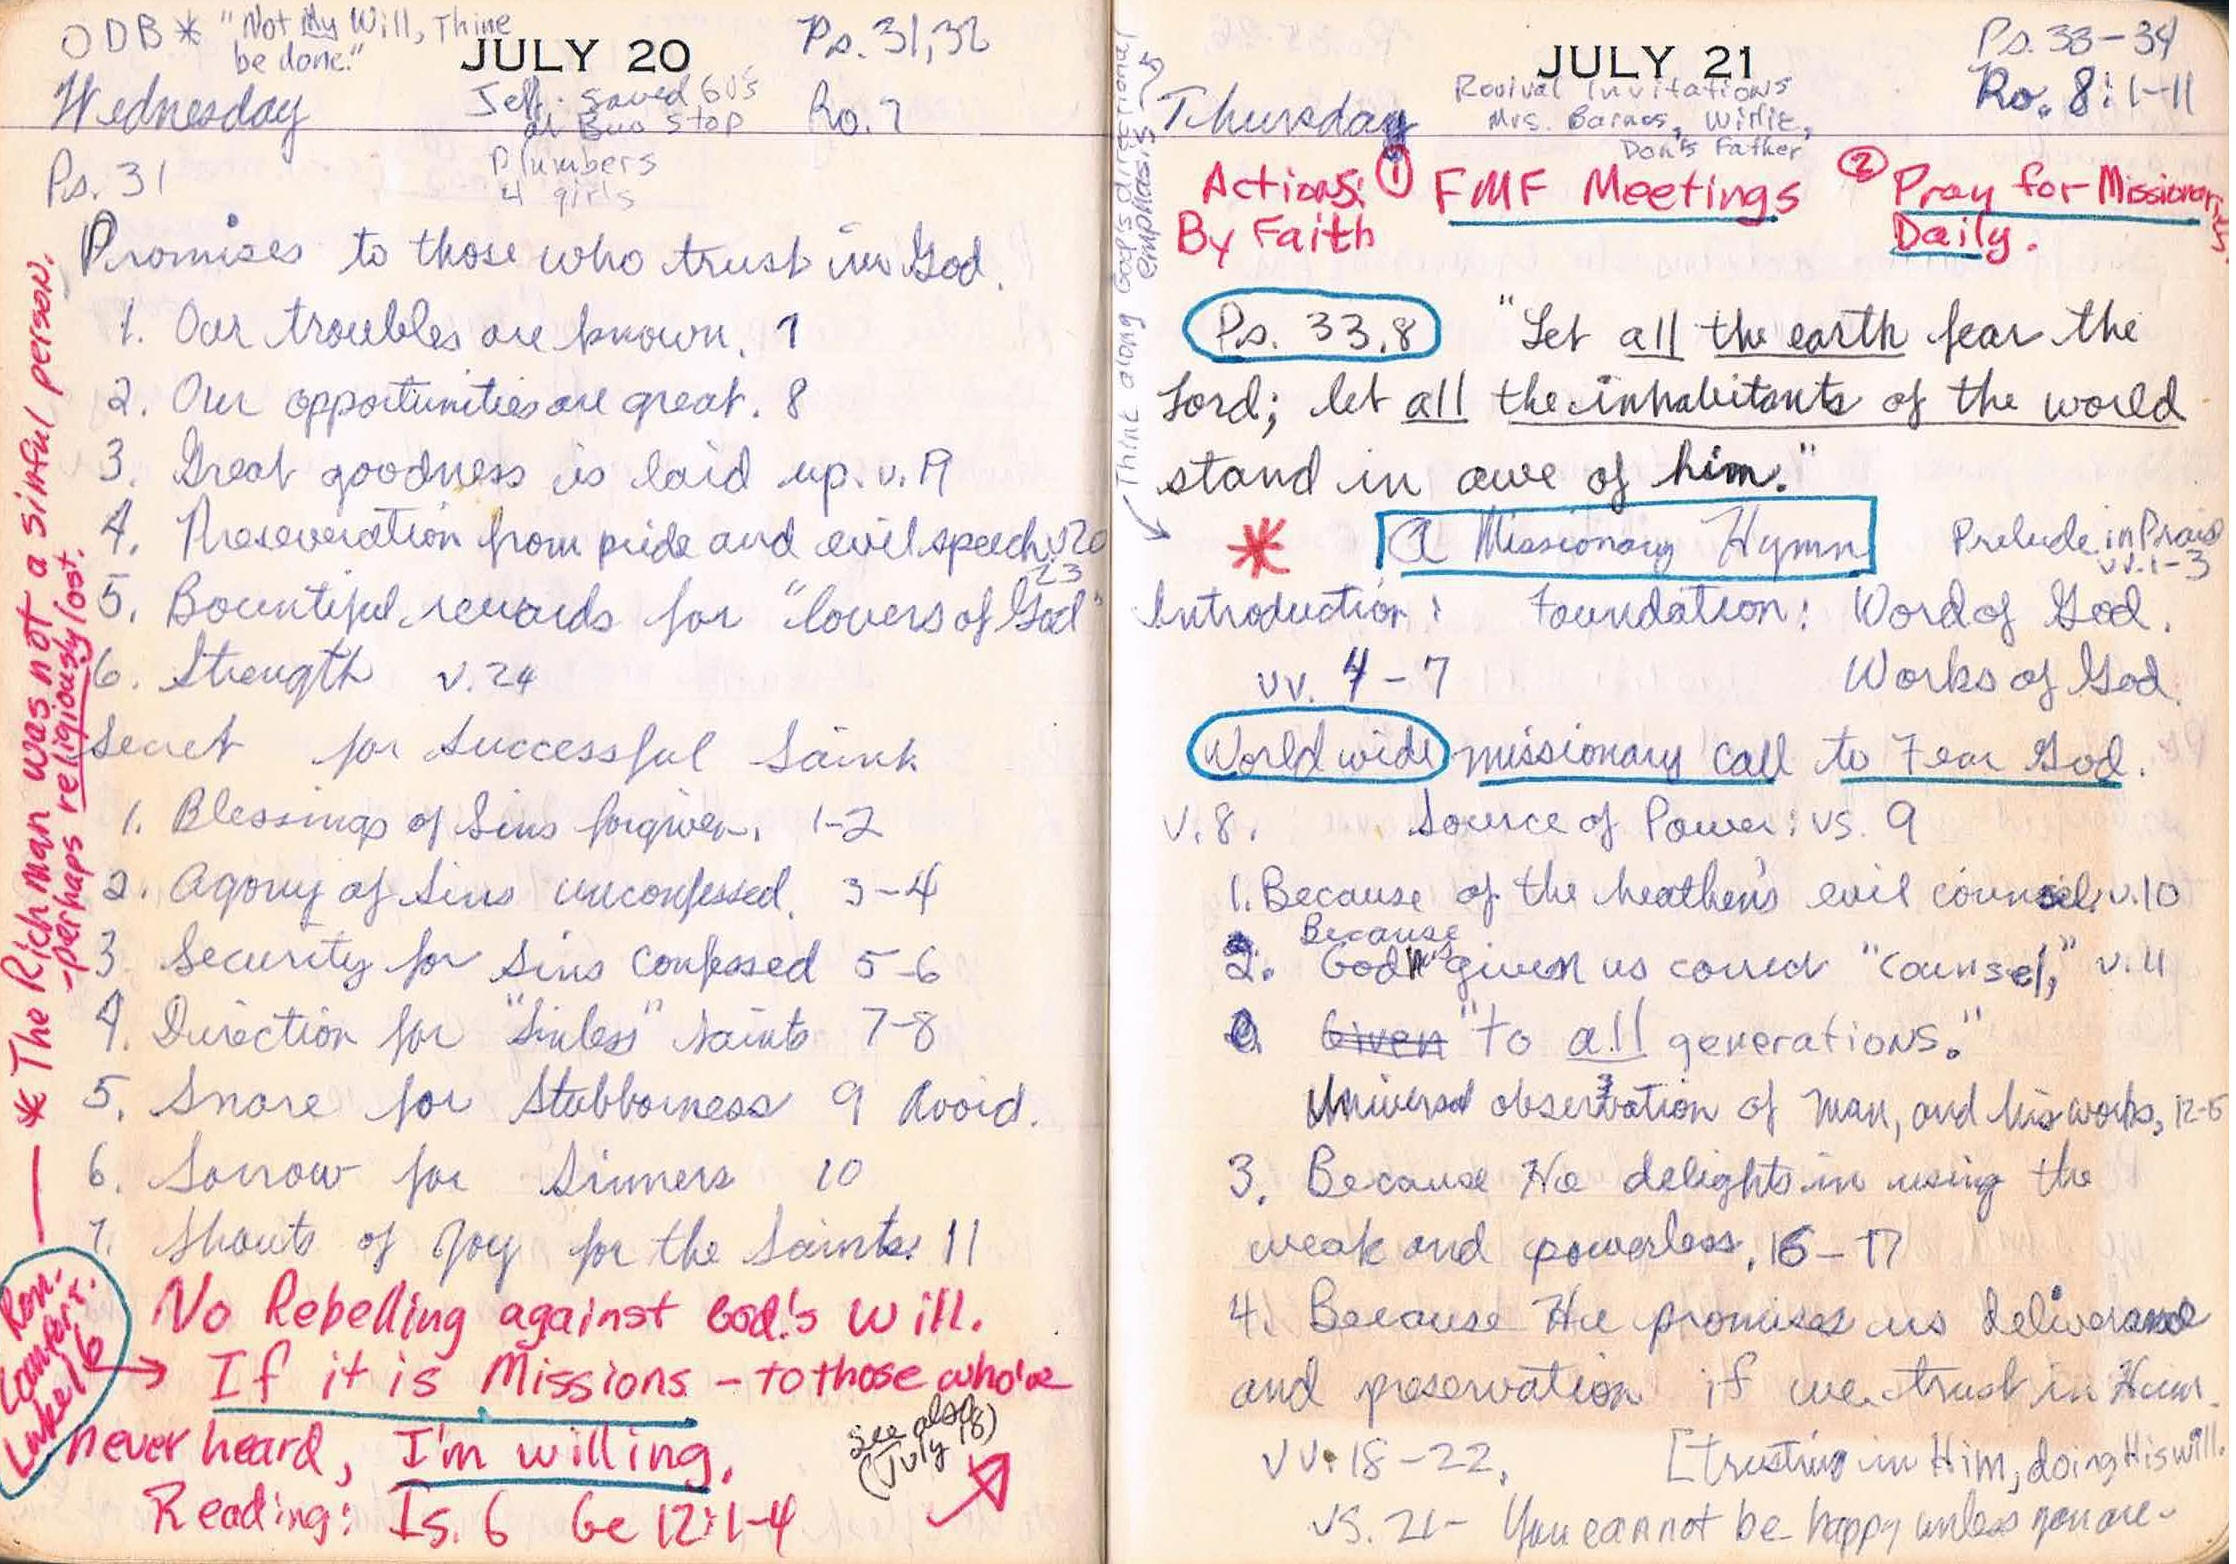 July 20 & 21 were special days in 1977 to me.